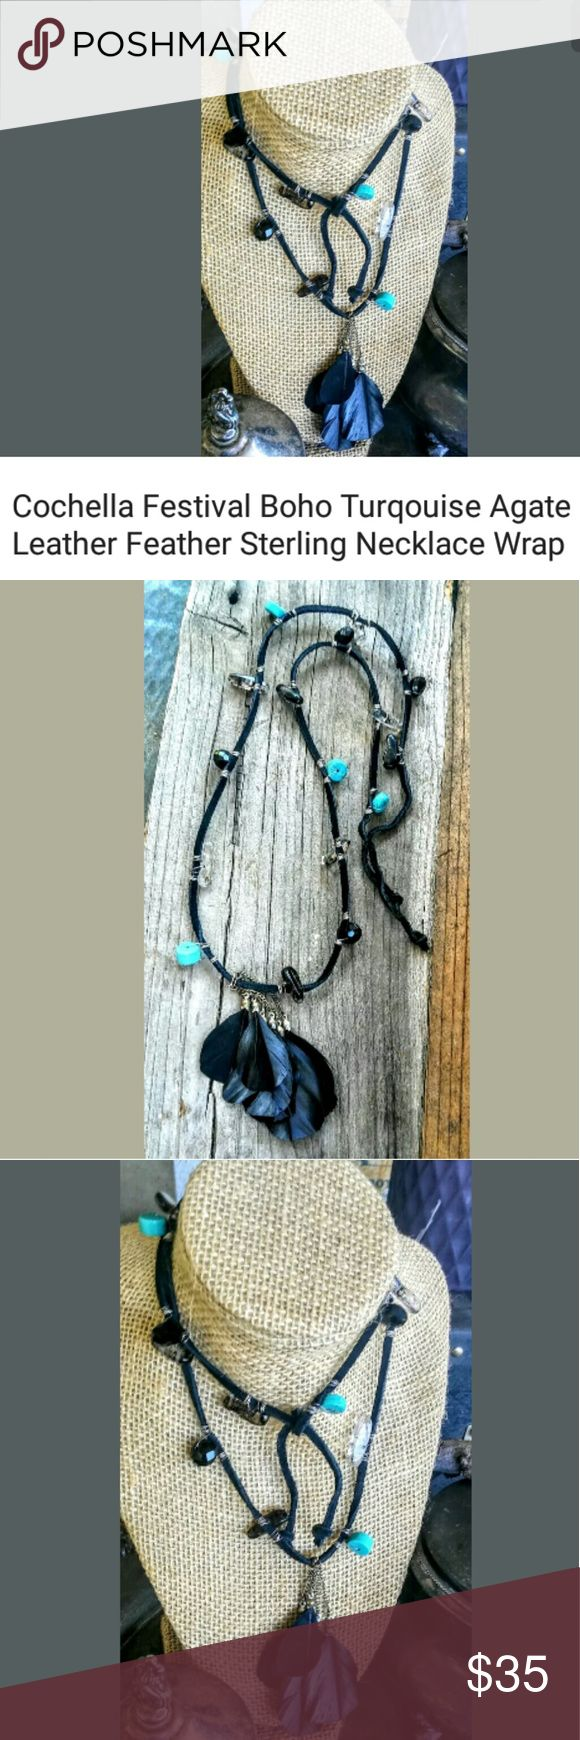 """Leather Precious Stone Boho Festival Neck Wrap Artisan Handcrafted Bohemian Leather Wrap Necklace 17"""" Urban Festival Boho Style Turquoise Agate Black Jet Vintage Feather Fringe 3"""" Unique Rustic Individual Can be worn several different ways!! Last picture shown with Turquoise Fringe Festival Necklace sold seperate Wildfox Jewelry Necklaces"""